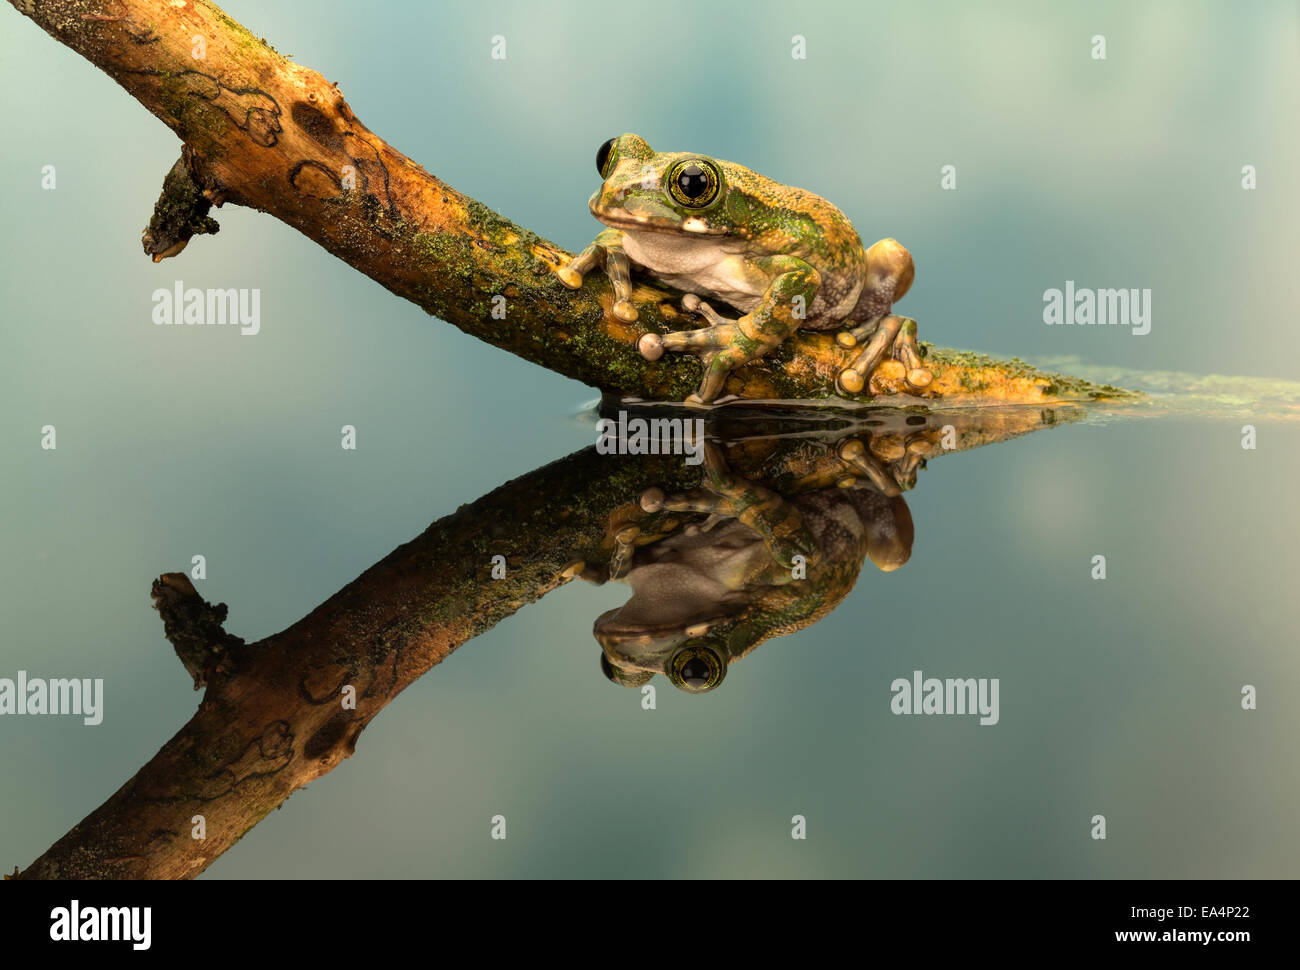 Peacock tree frog (Leptopelis vermiculatus) on a stick, with its reflection - Stock Image